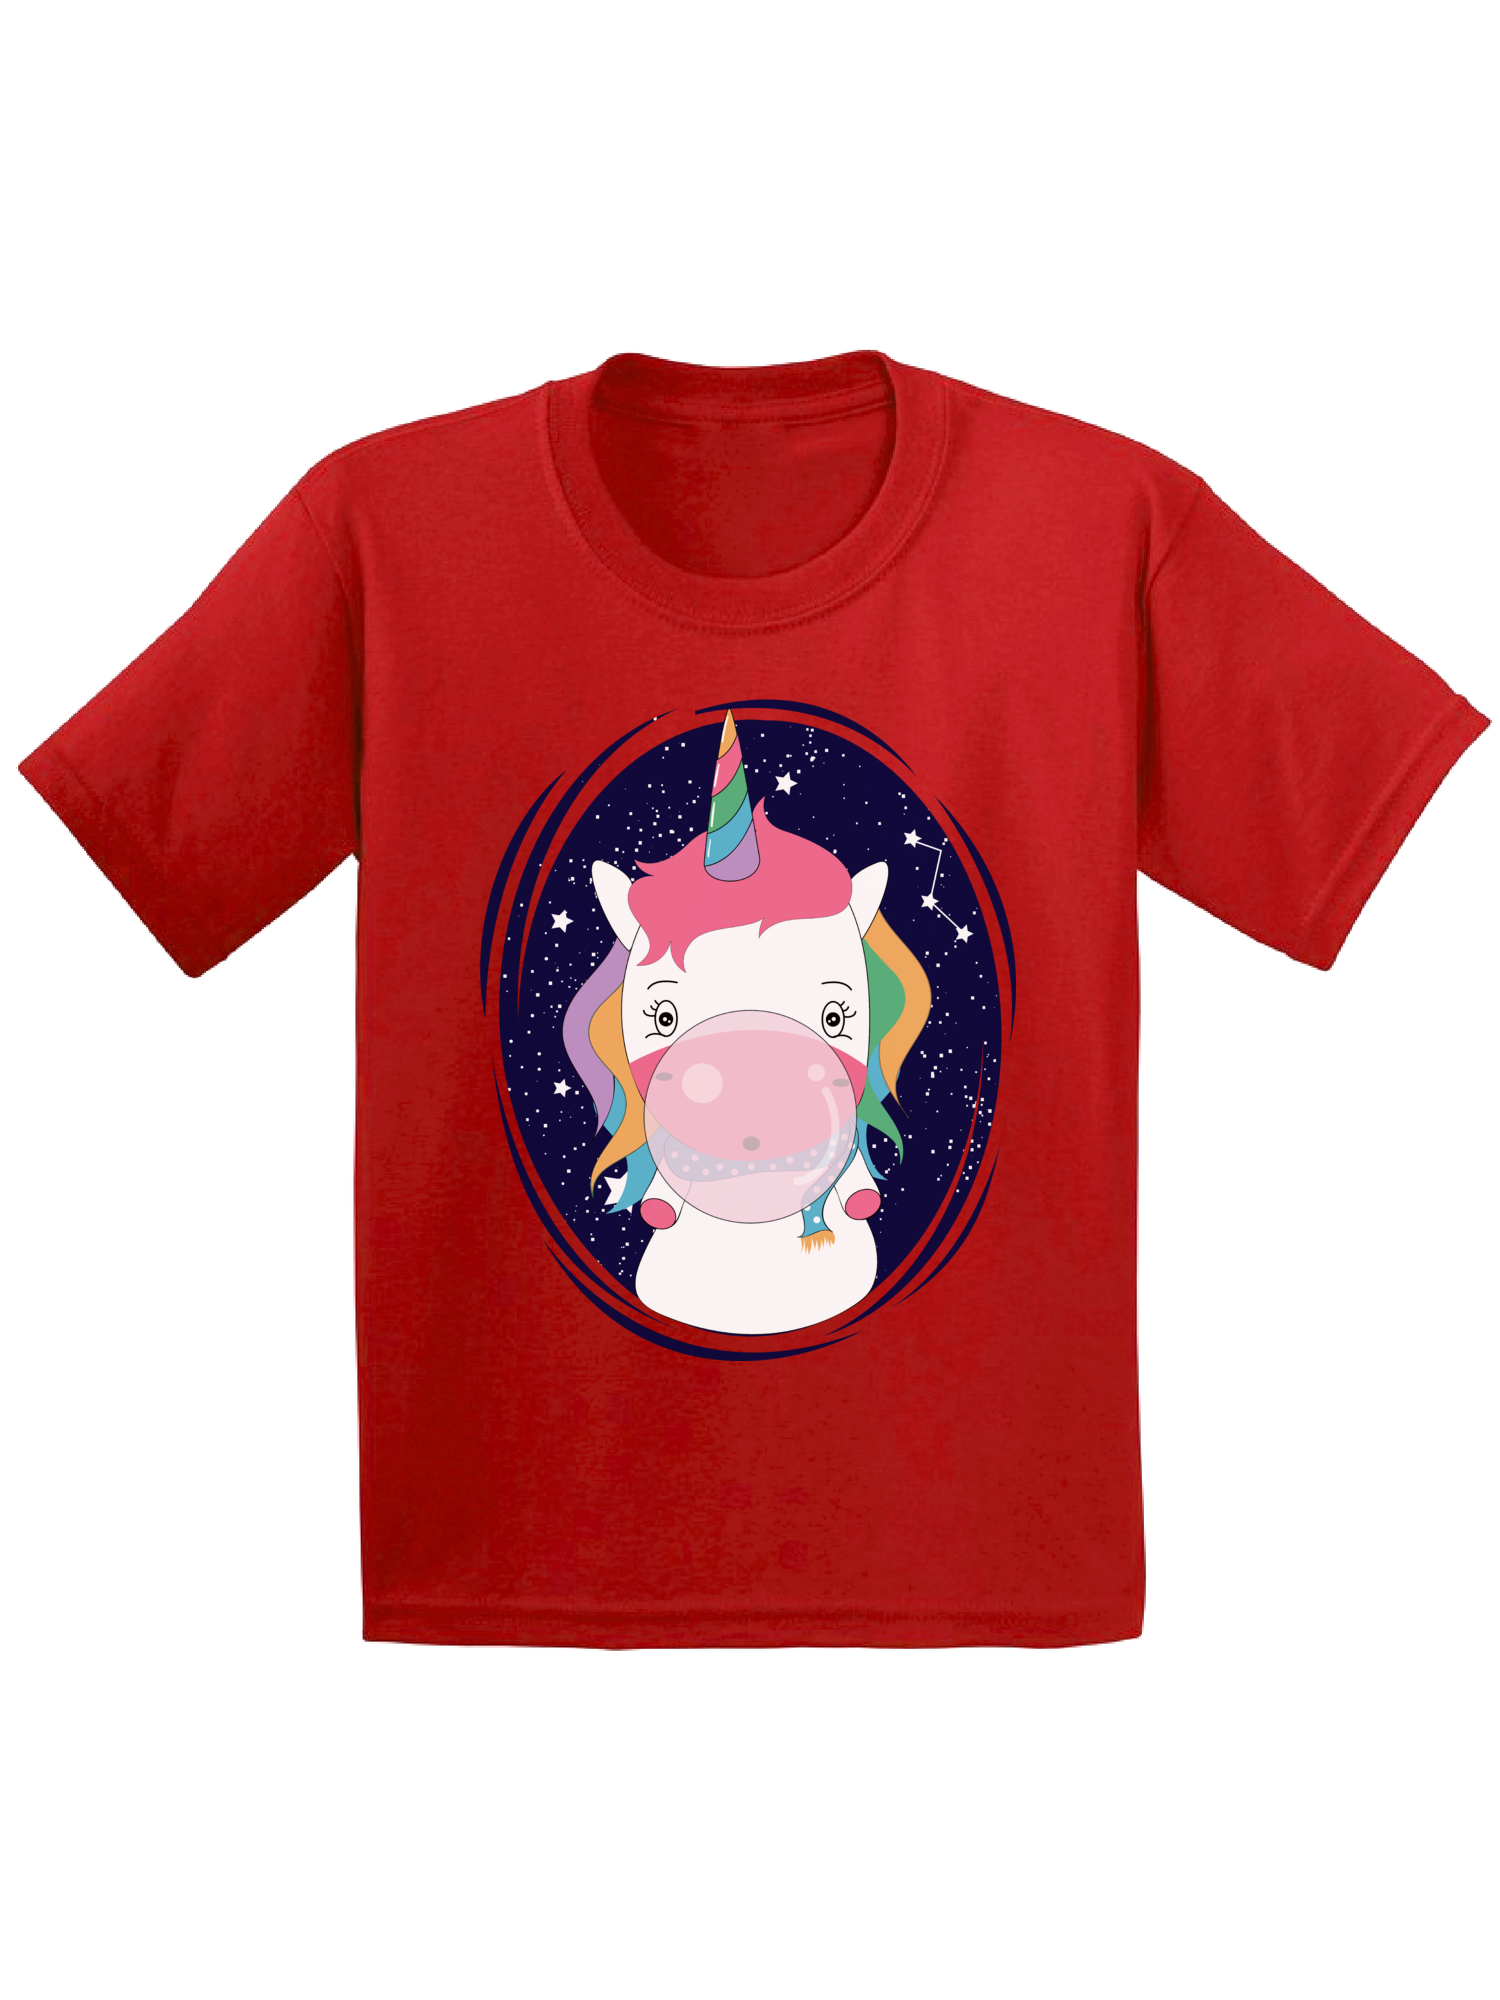 Cute Birthday Shirts For Toddlers